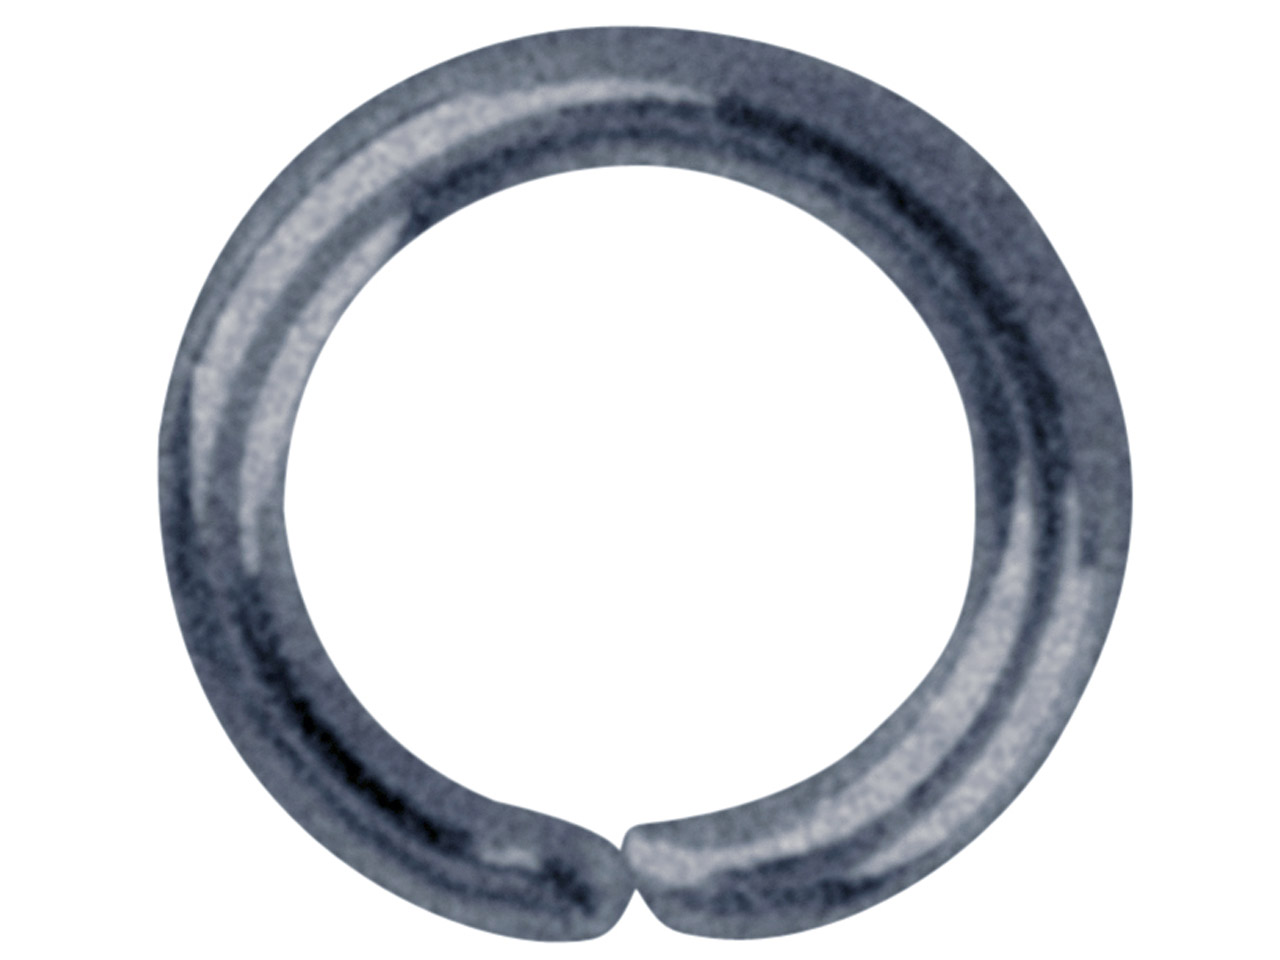 Antique Black Jump Ring Round 4.5mm Pack of 100,